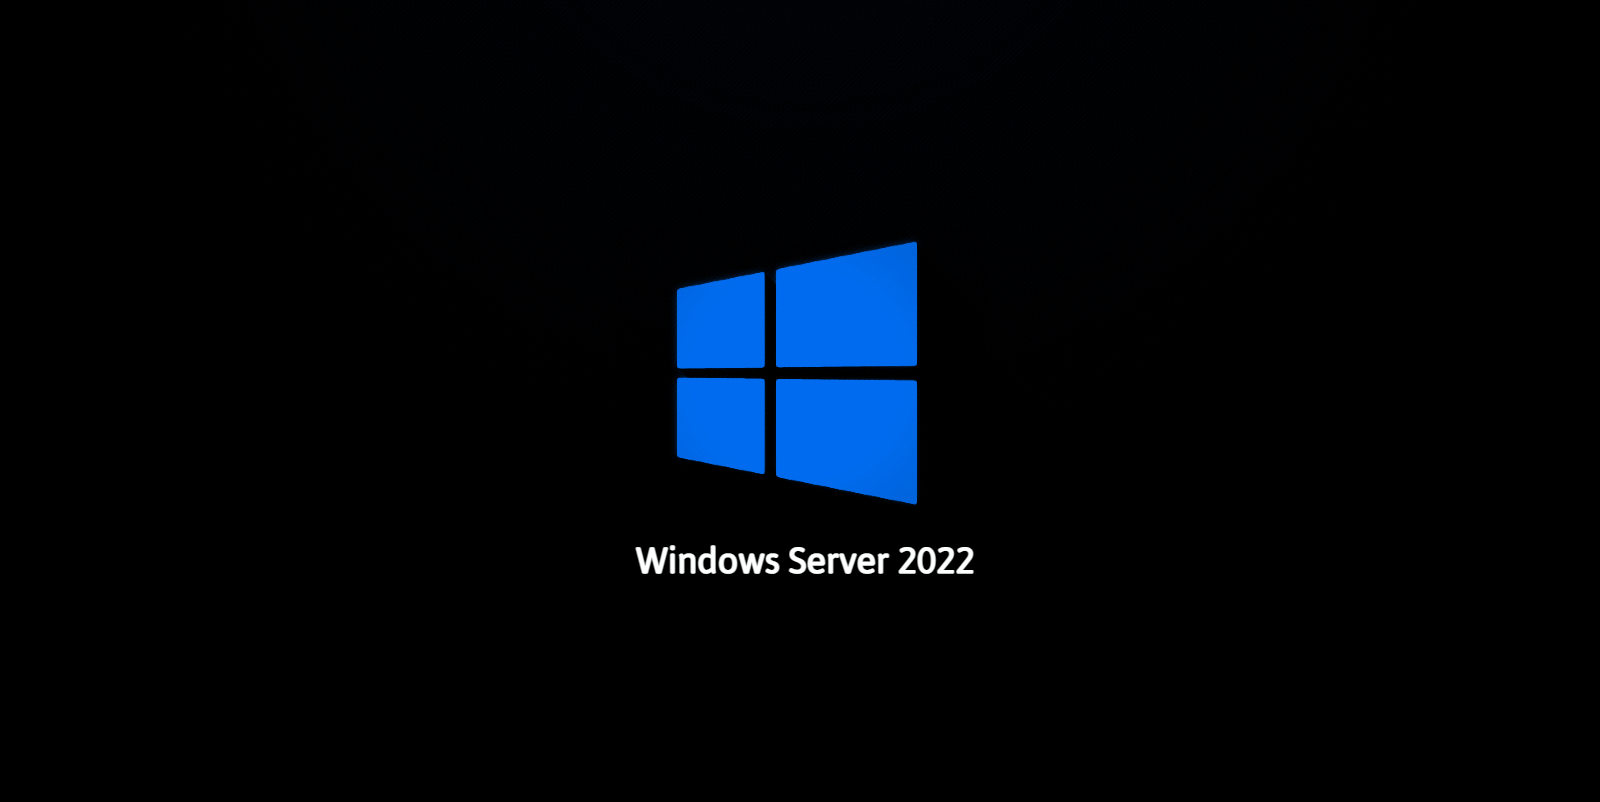 Microsoft: Windows Server 2022 is now generally available